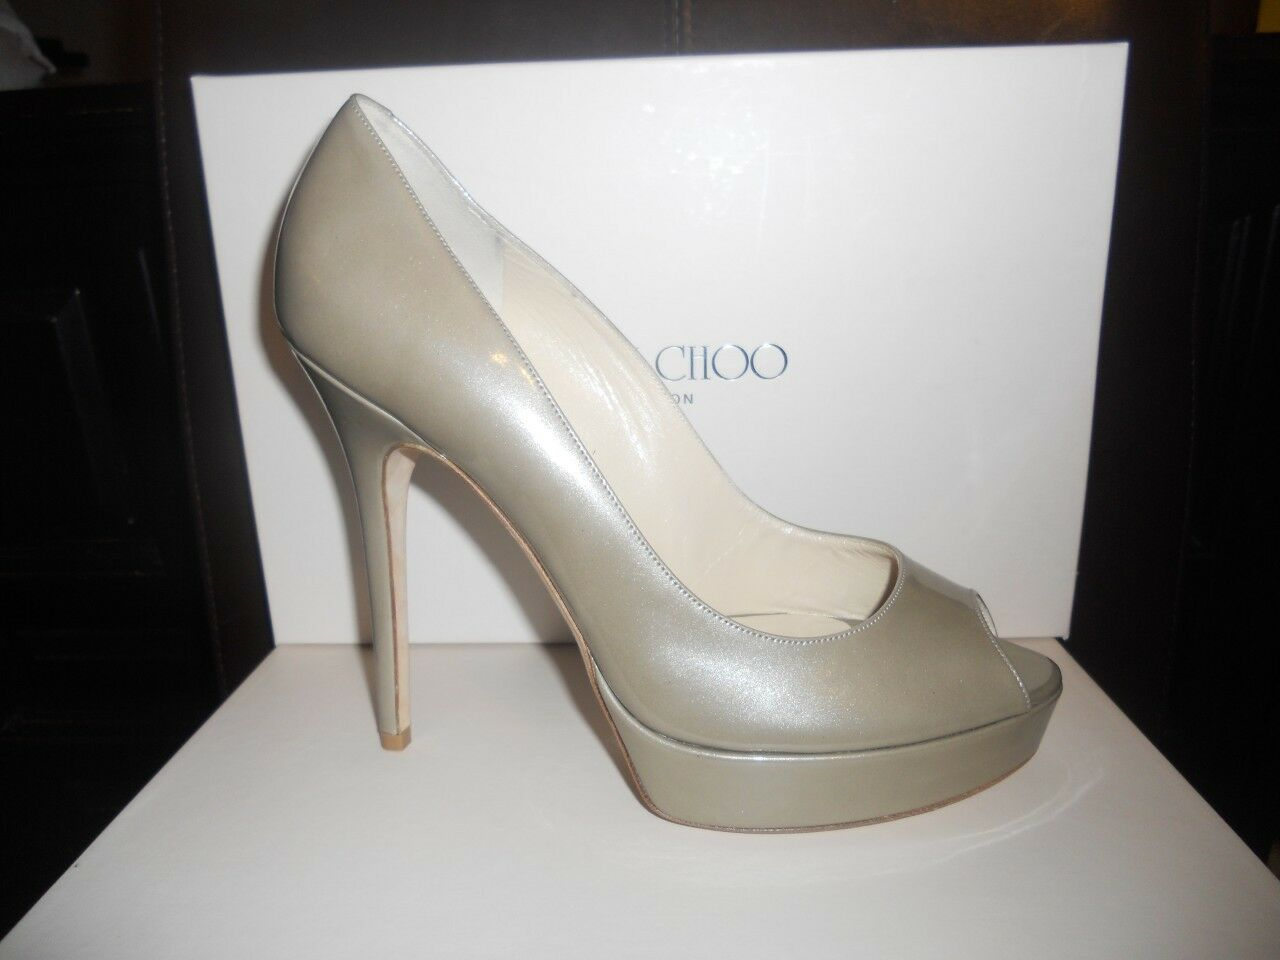 Jimmy Choo CROWN Enamel Patent Leather Open Toe Platform Heels Pumps shoes 40